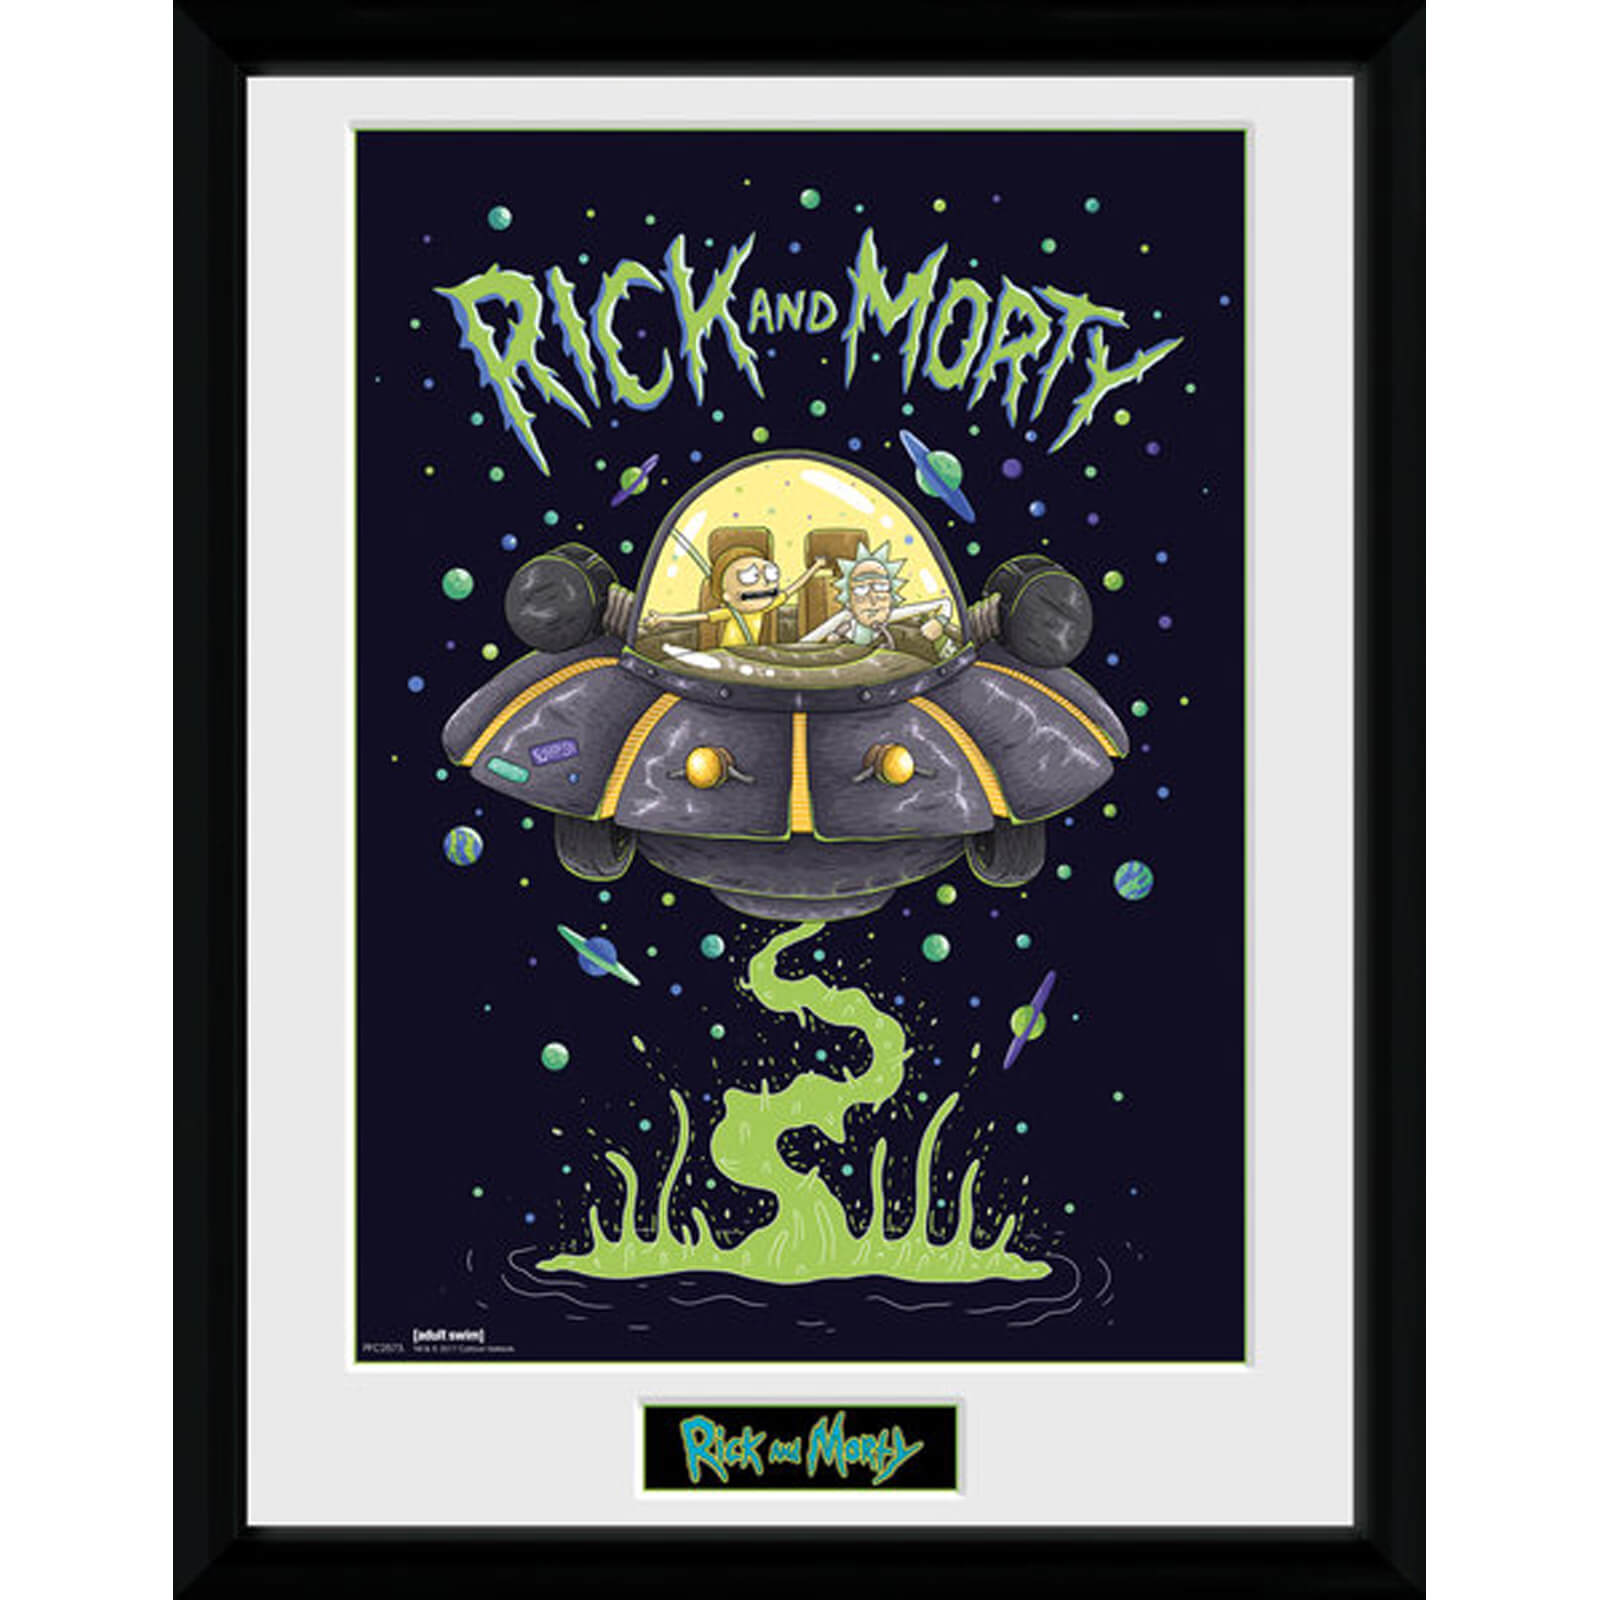 Rick and Morty Ship 12 x 16 Inches Framed Photograph